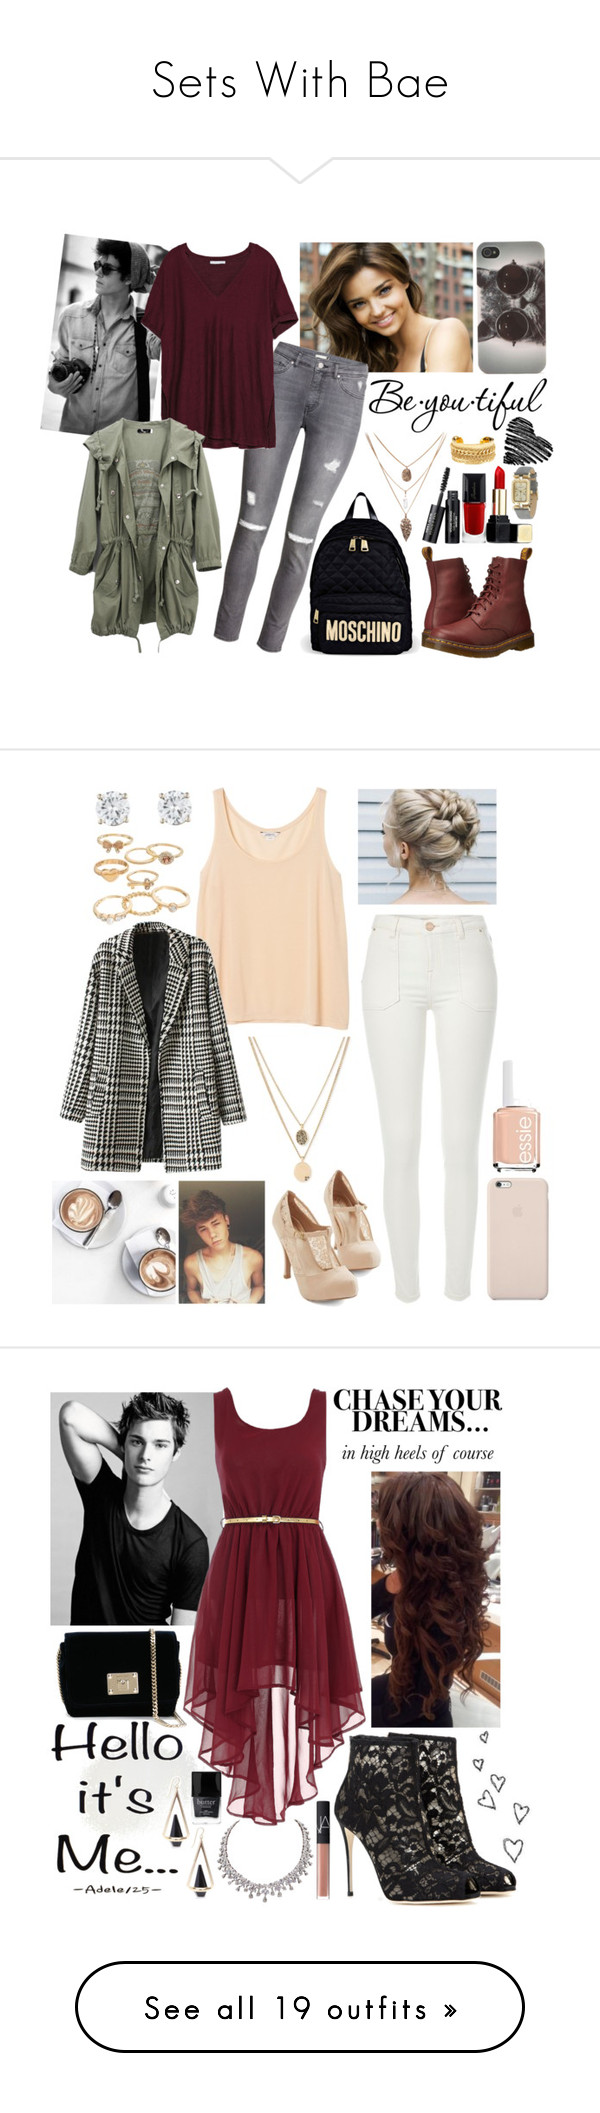 """""""Sets With Bae"""" by charlotte-sk ❤ liked on Polyvore featuring Schone, Kerr®, H&M, Zara, Dr. Martens, Rivka Friedman, Moschino, Guerlain, With Love From CA and Isaac Mizrahi"""